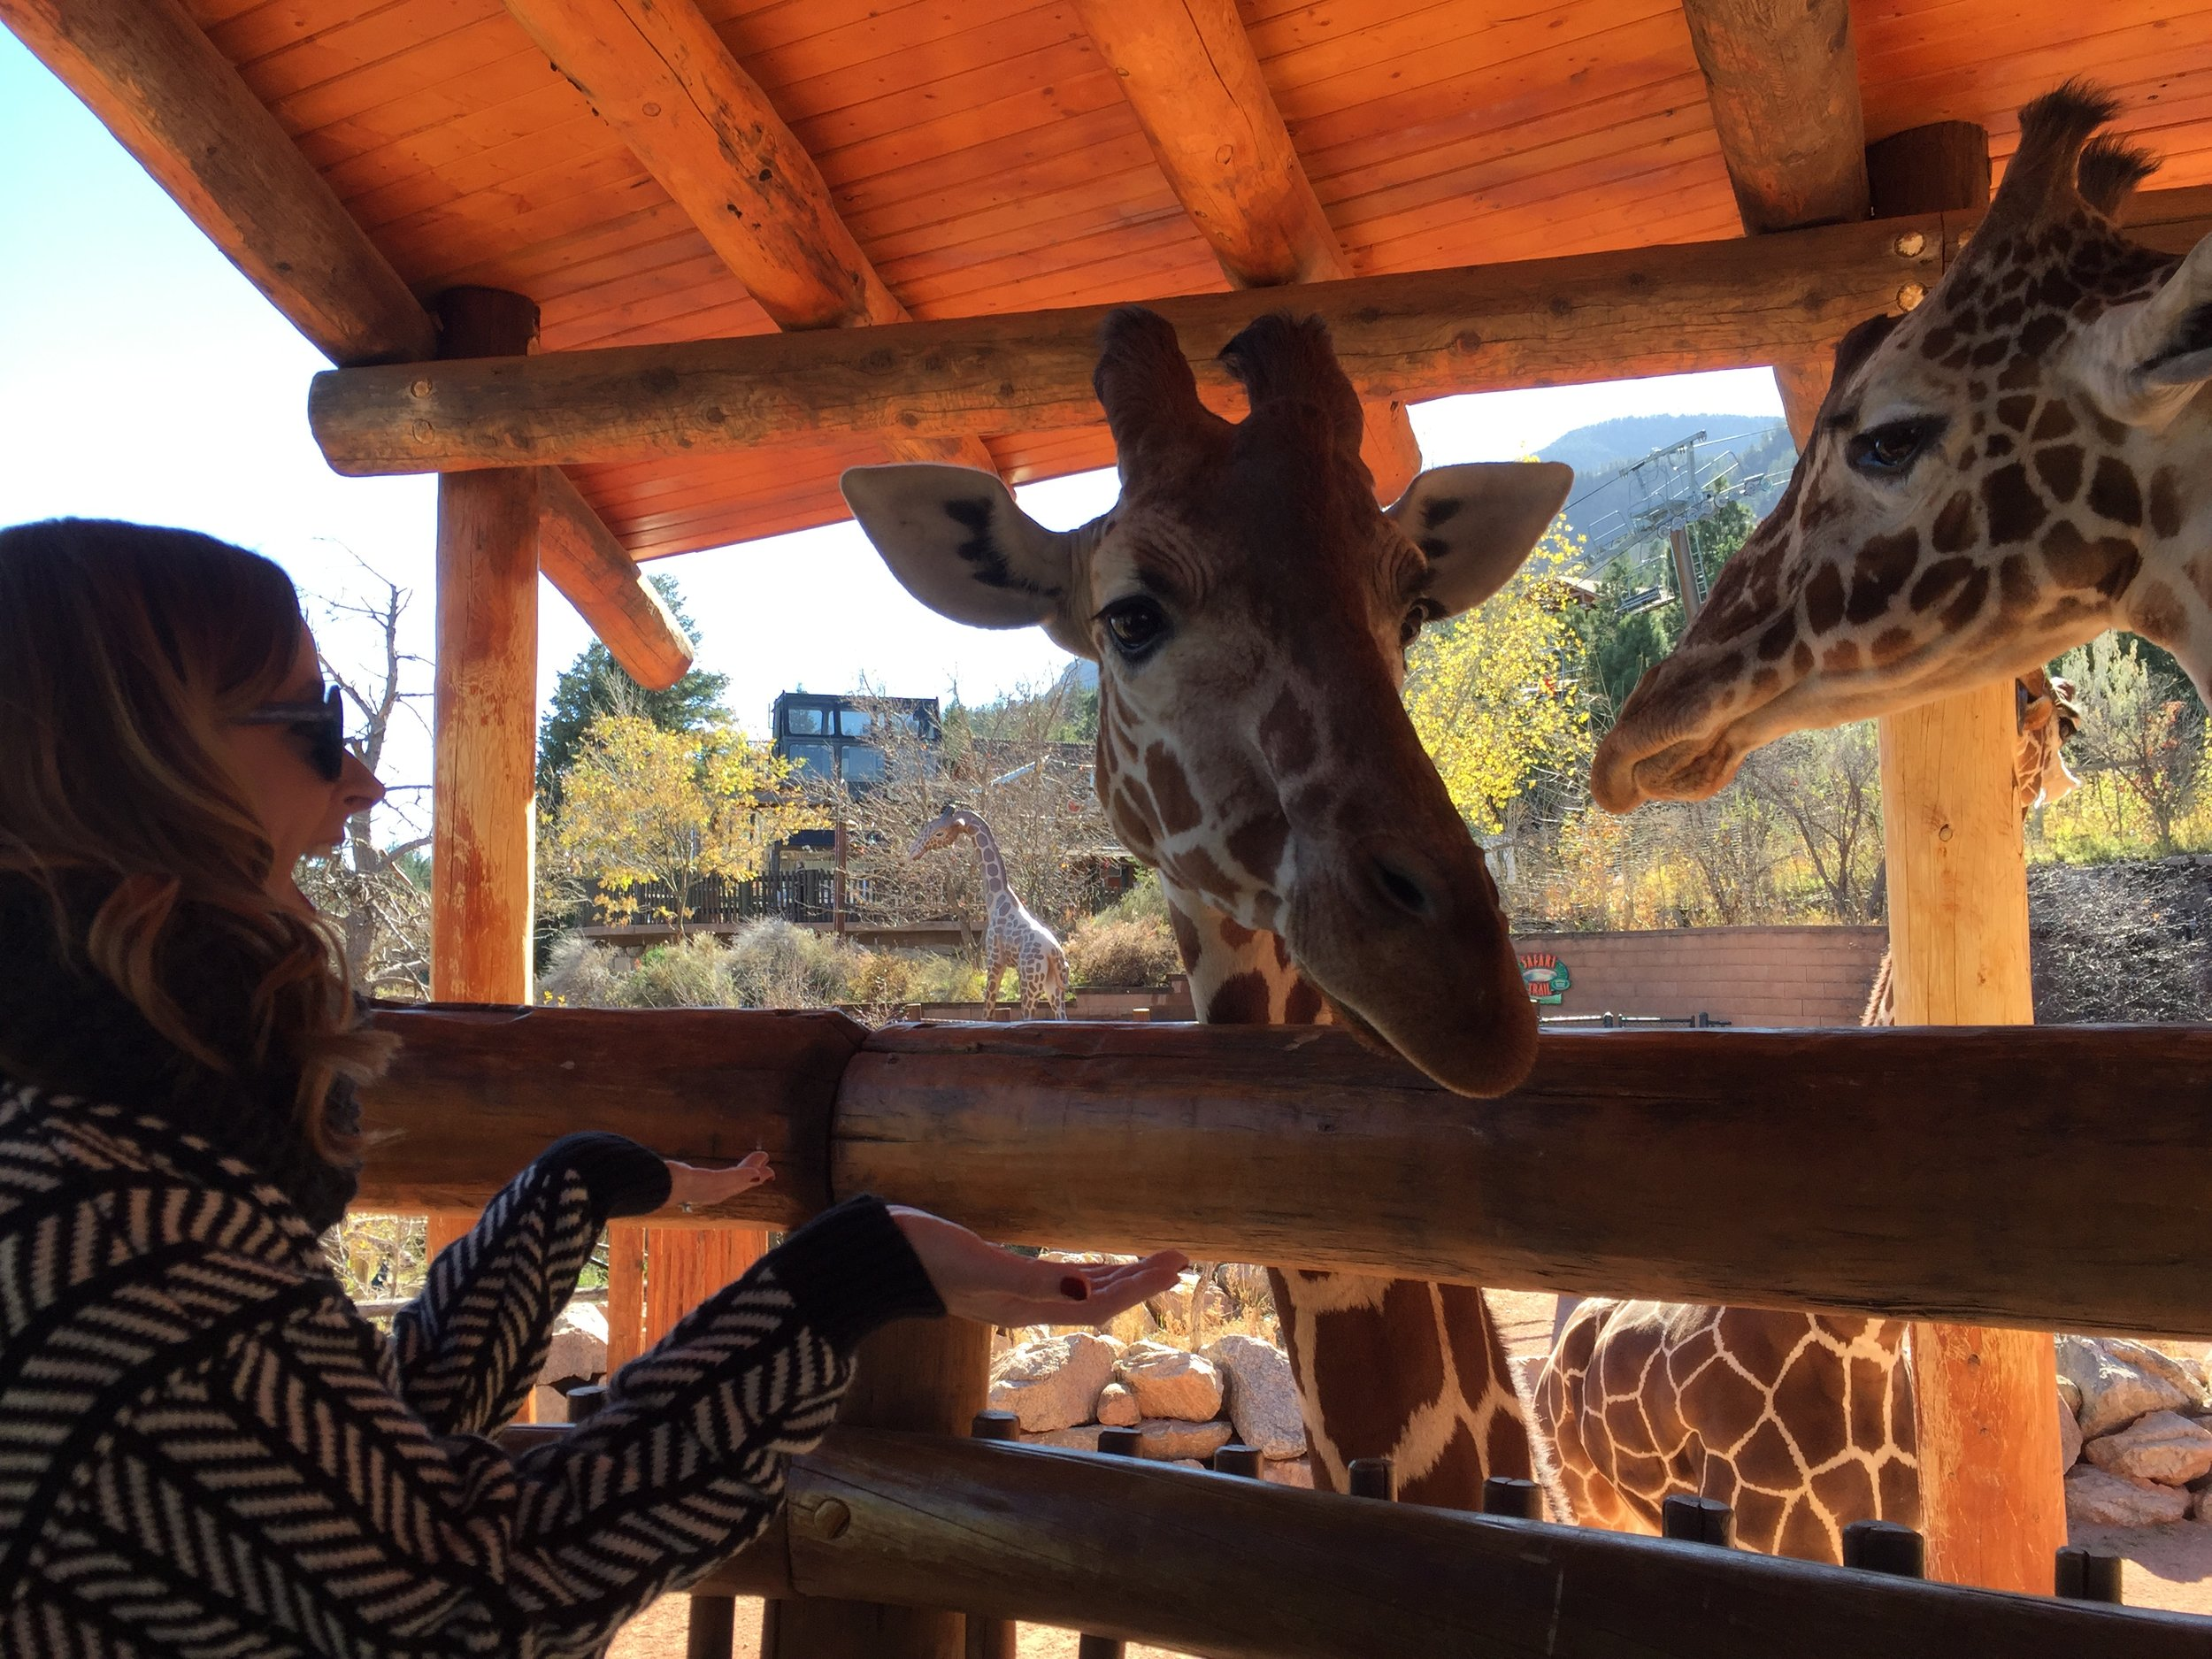 Jazzmin made my WILDEST zoo dreams come true with these two! - November 2016